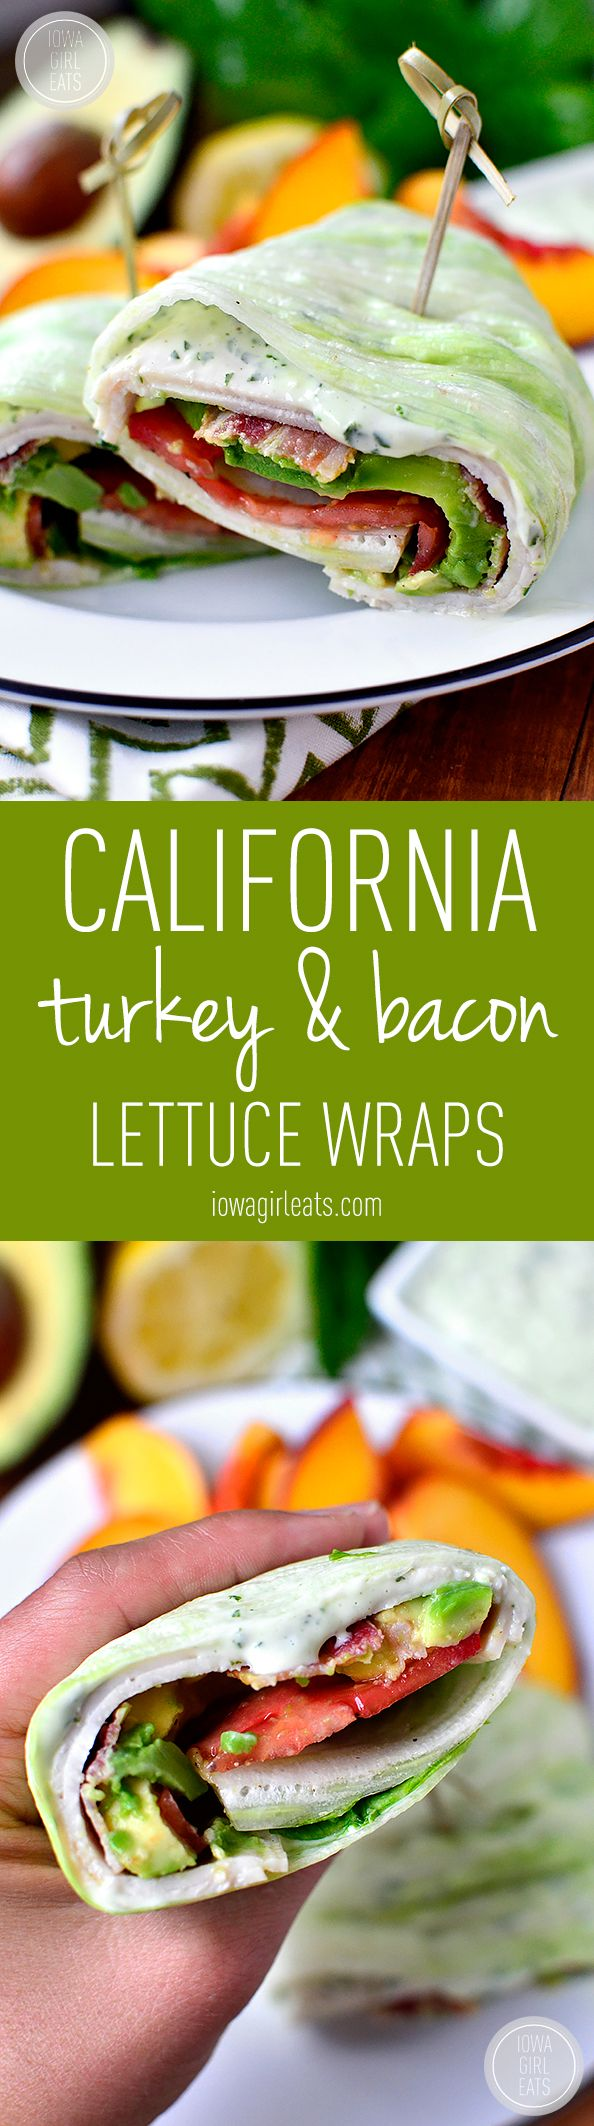 California Turkey and Bacon Lettuce Wraps with Basil-Mayo is a fresh and filling low-carb, gluten-free lunch recipe that comes together in minutes! | iowagirleats.com